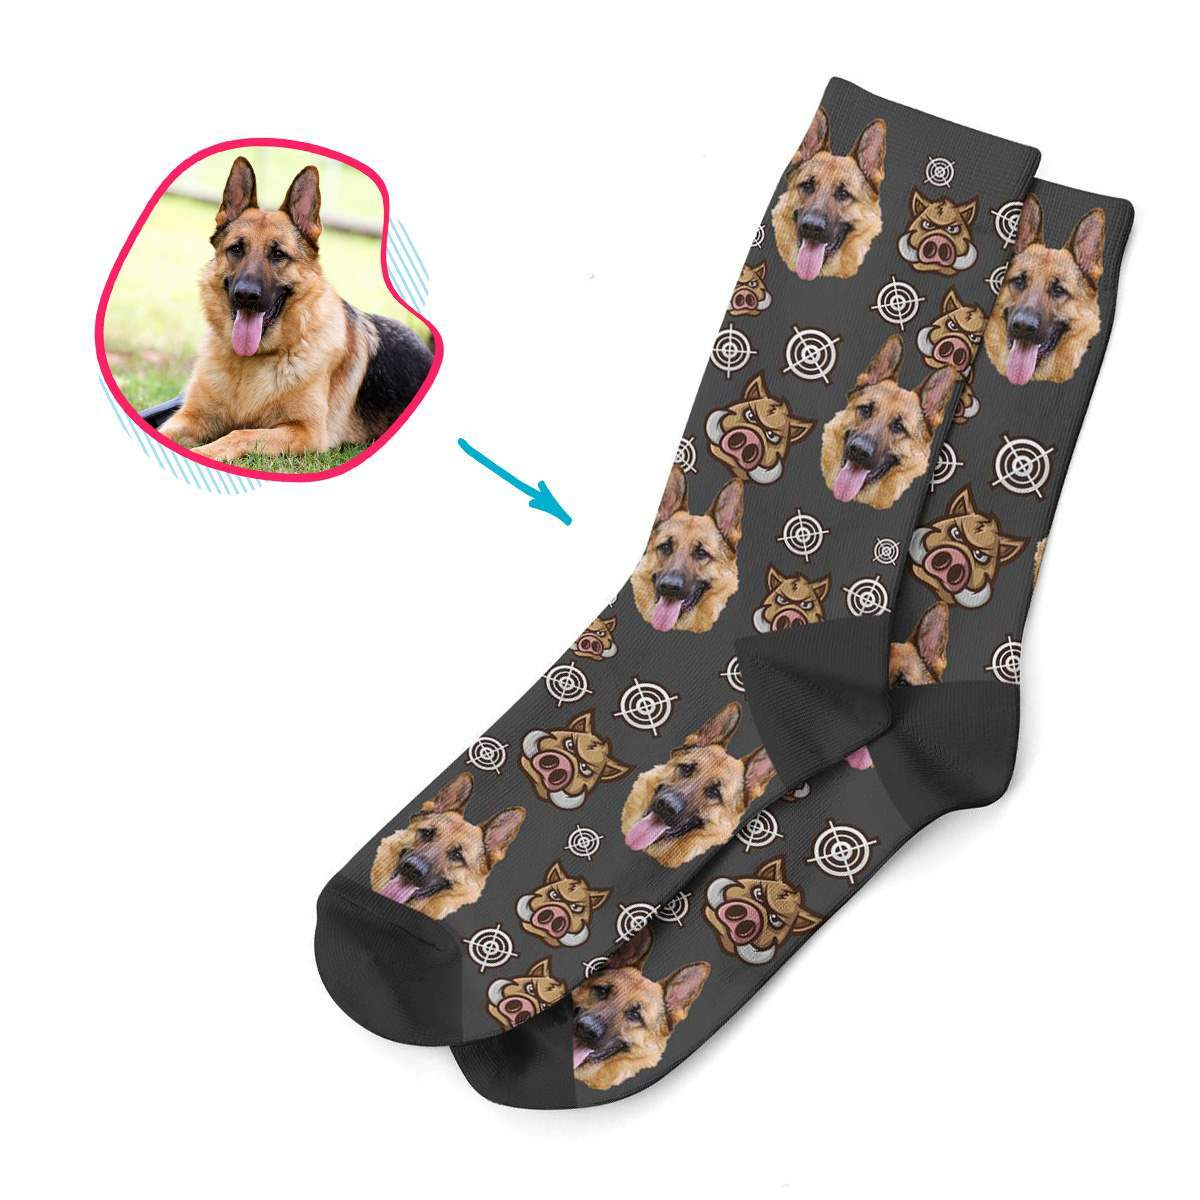 dark Boar Hunter socks personalized with photo of face printed on them